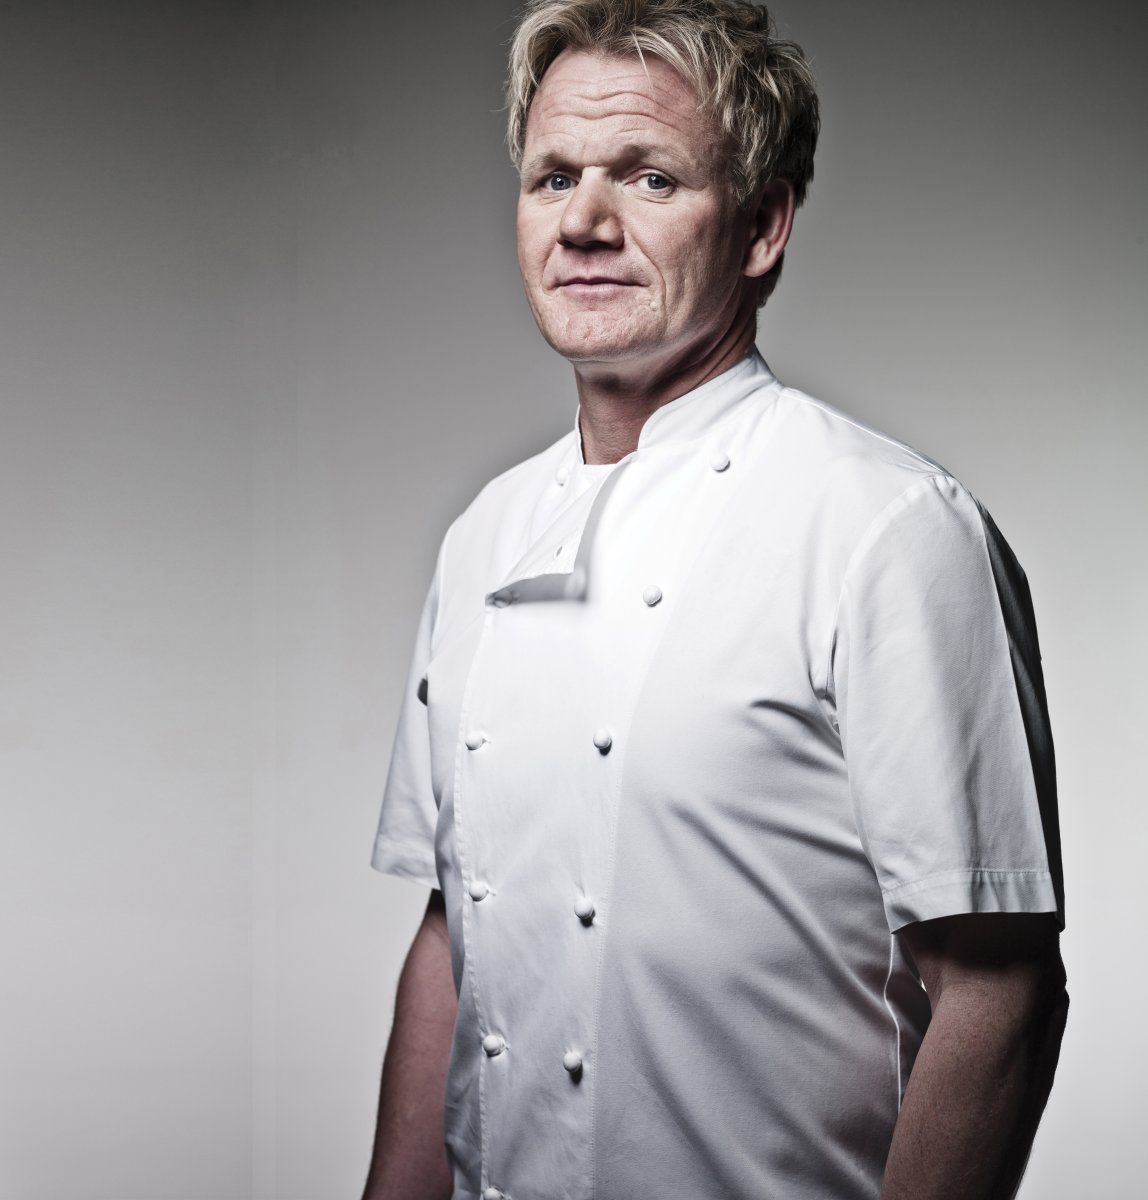 Free Download Gordon Ramsay Wallpapers 1148x1200 For Your